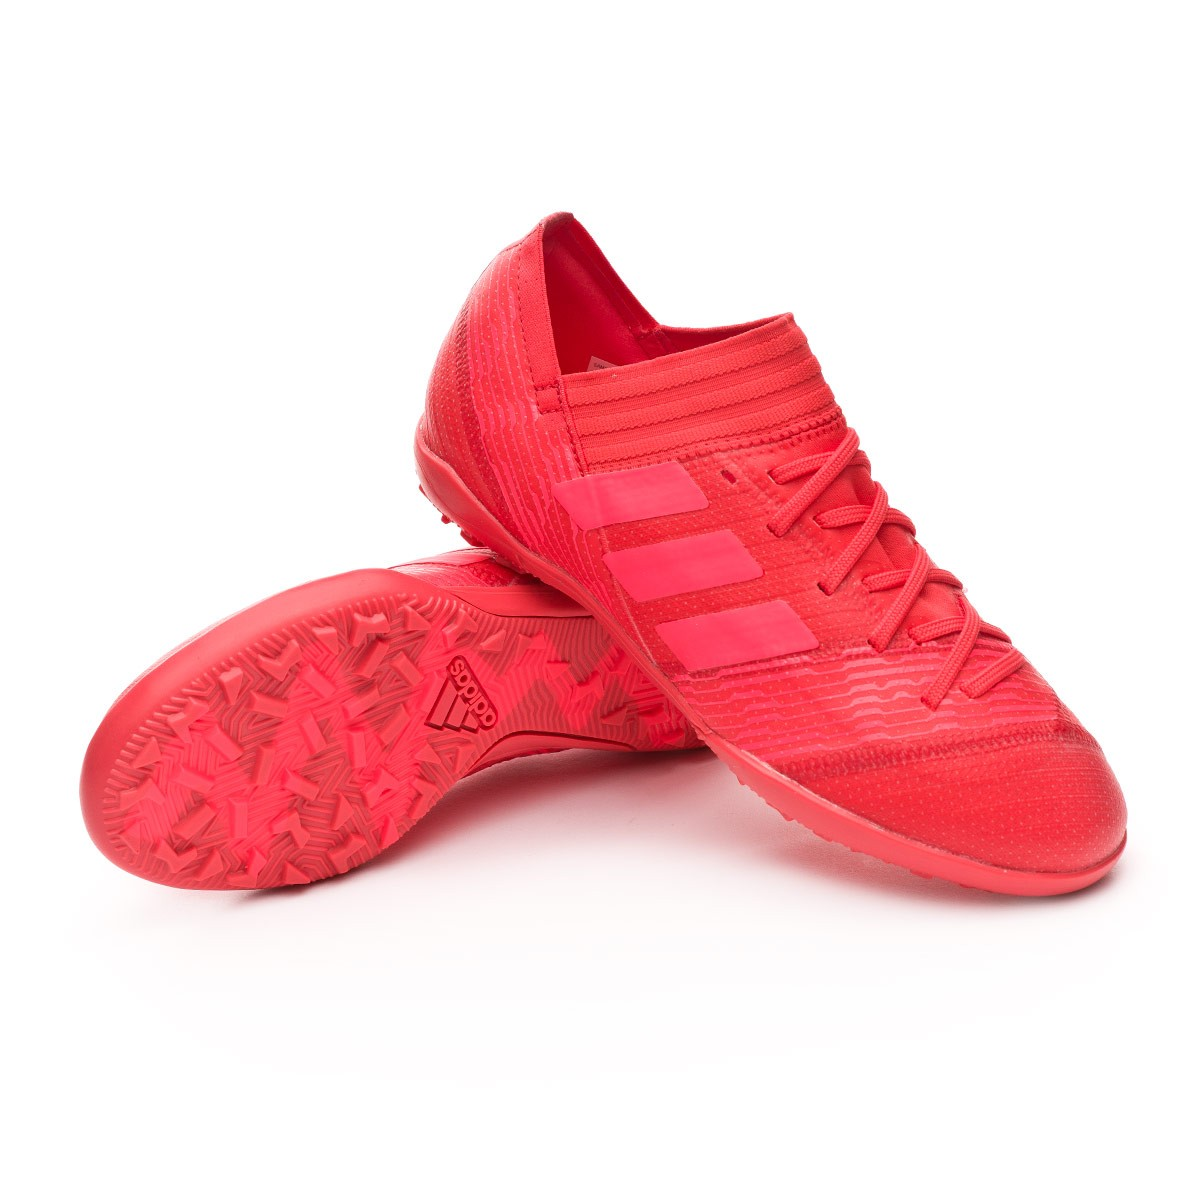 49992297122f Football Boot adidas Kids Nemeziz Tango 17.3 Turf Real coral-Red ...